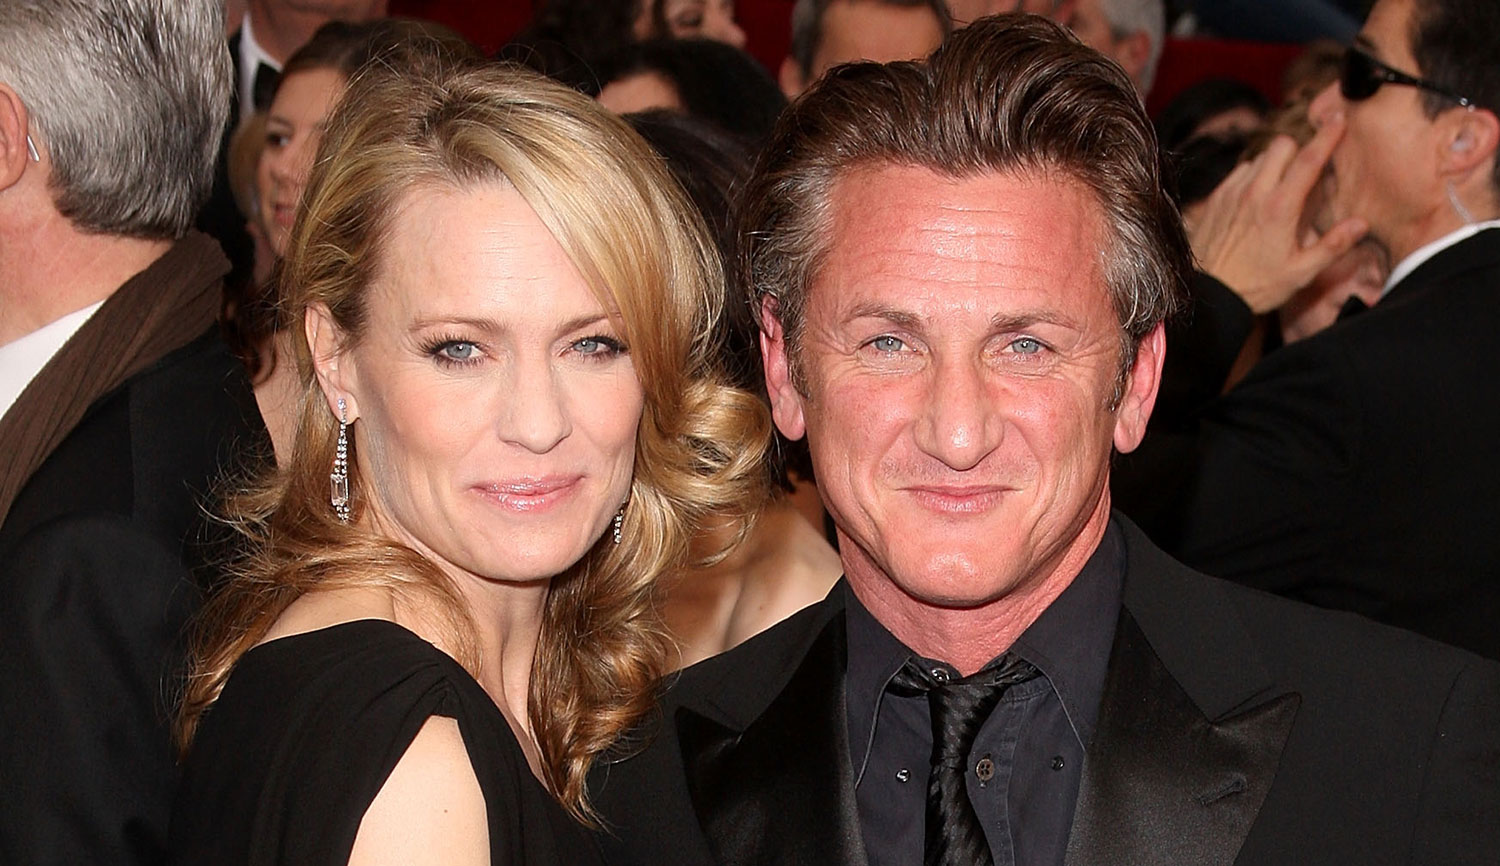 Robin Wright with her second husband, Sean Penn